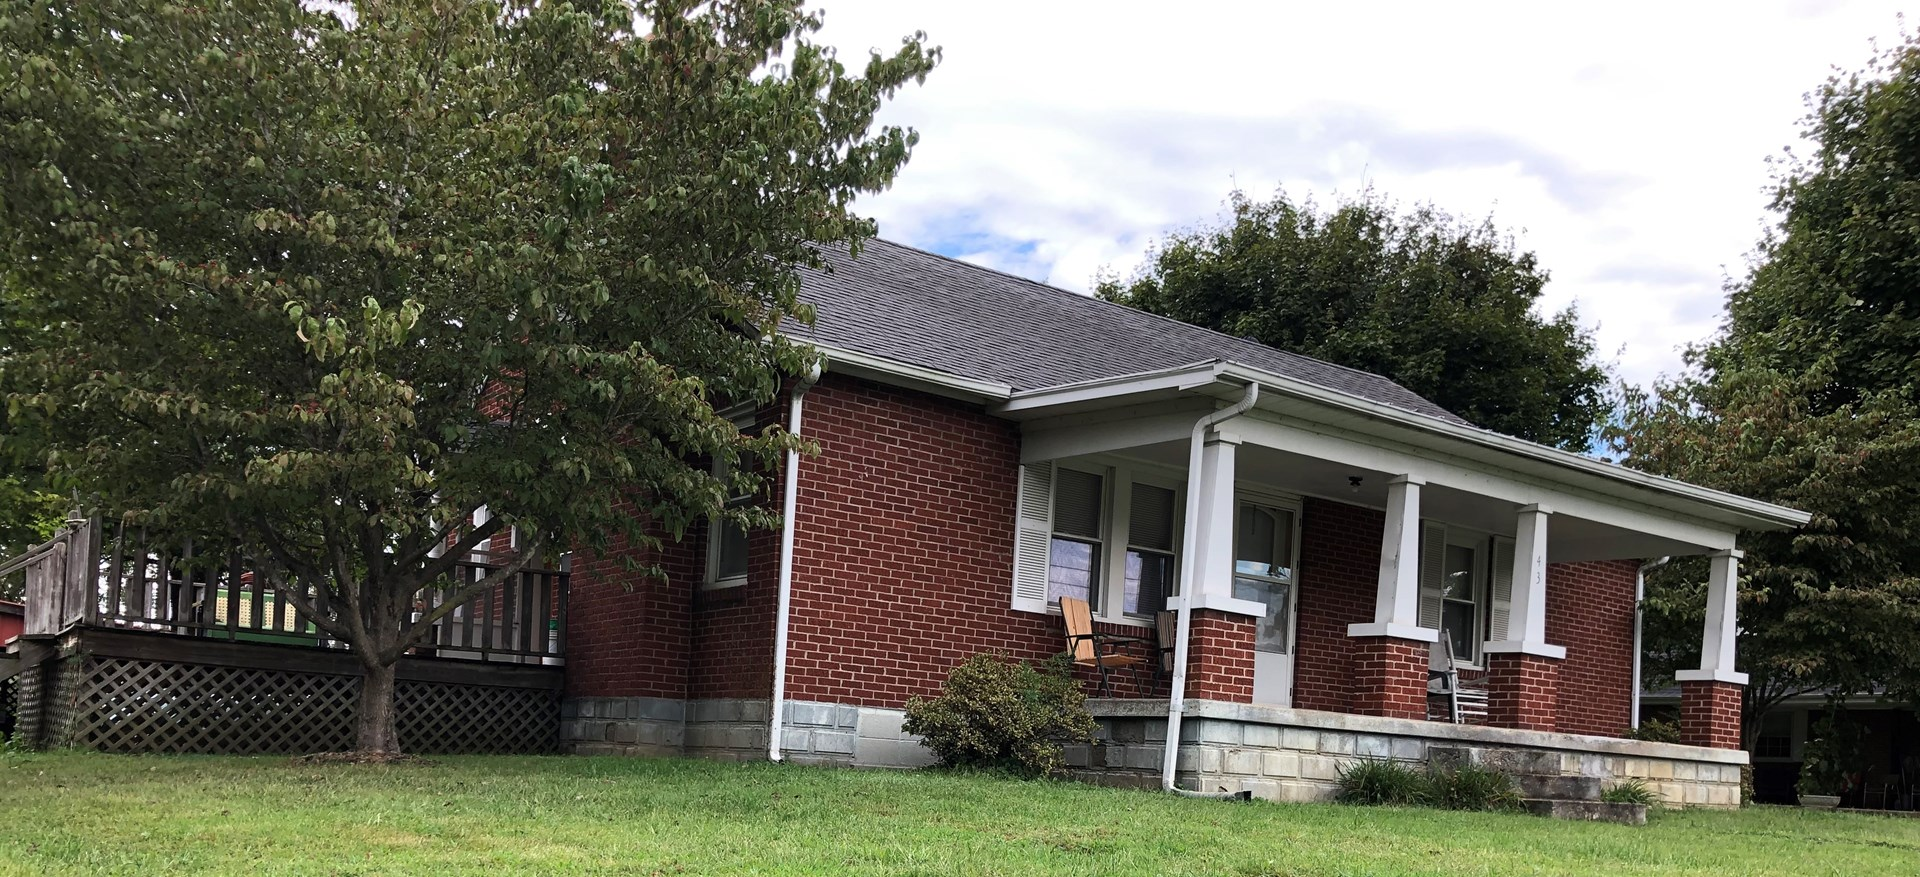 Home for sale in town, in Liberty Kentucky